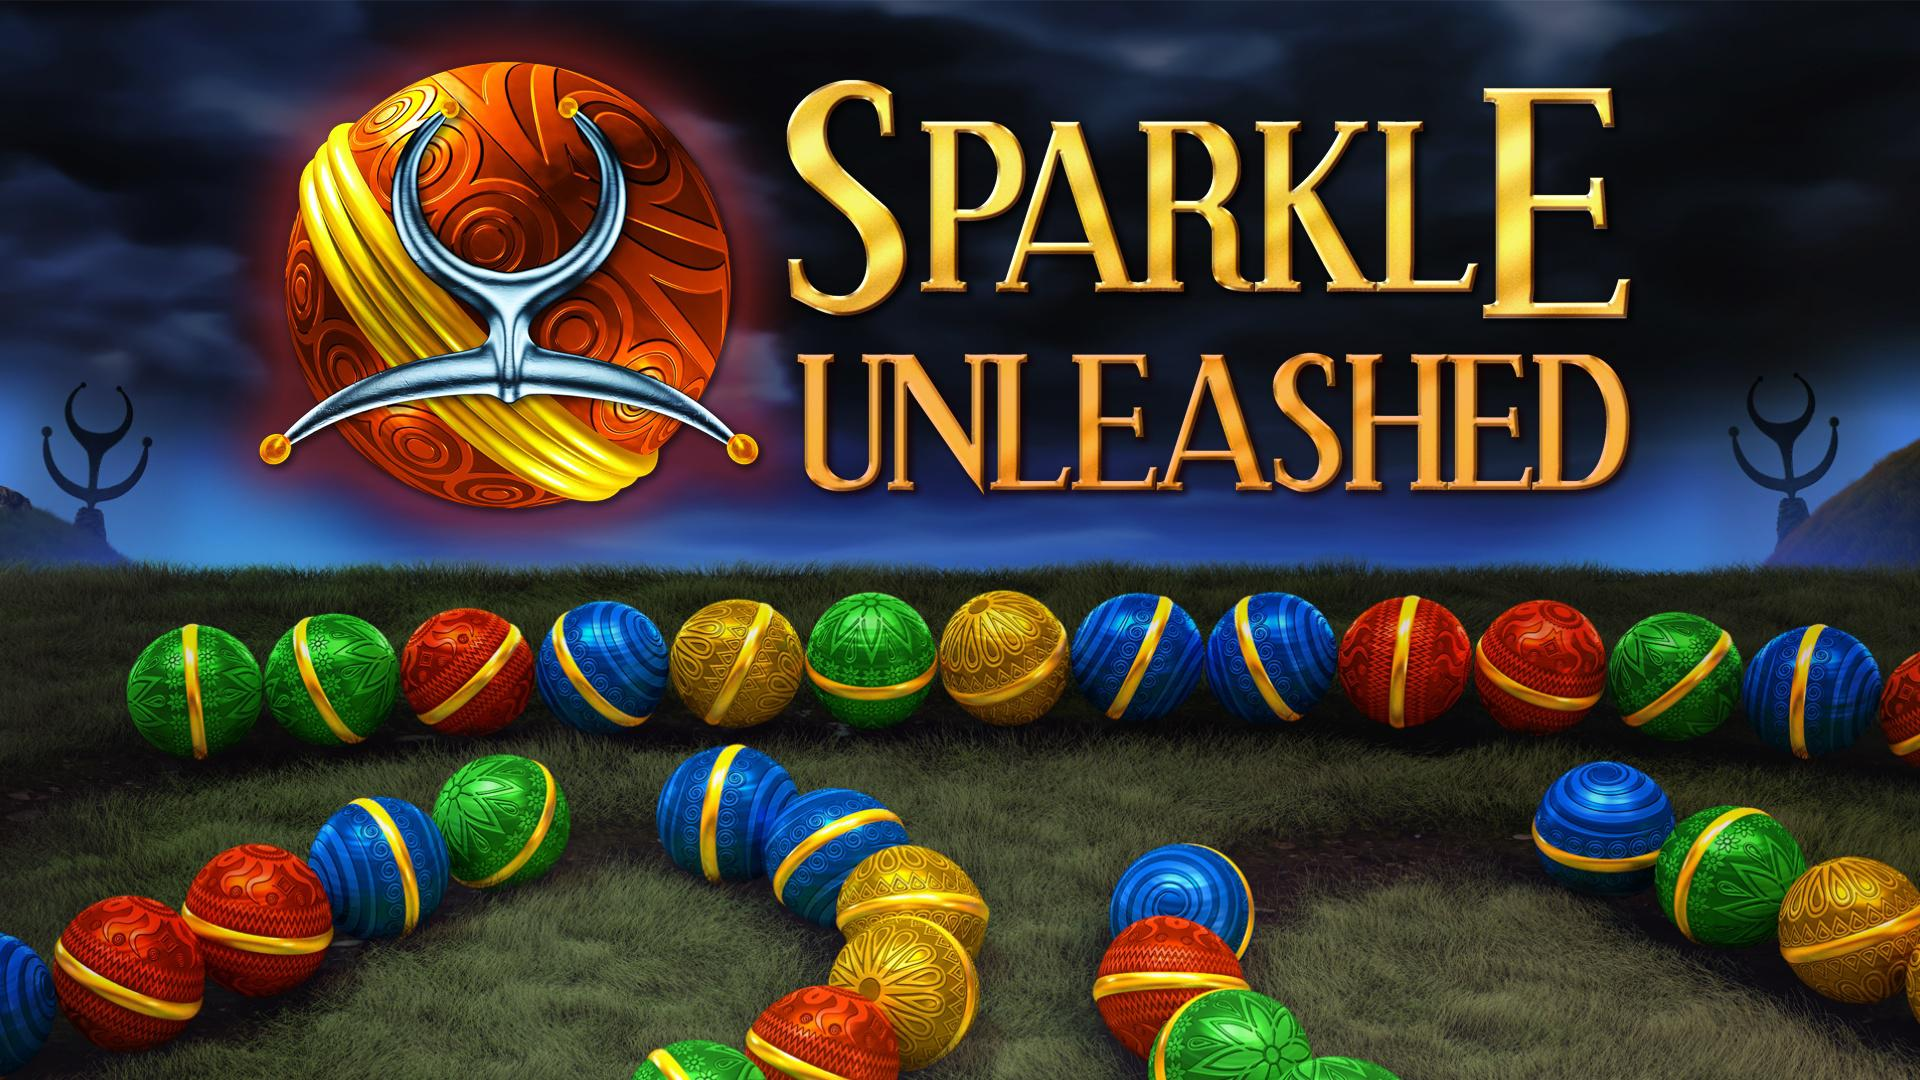 Sparkle Unleashed Video